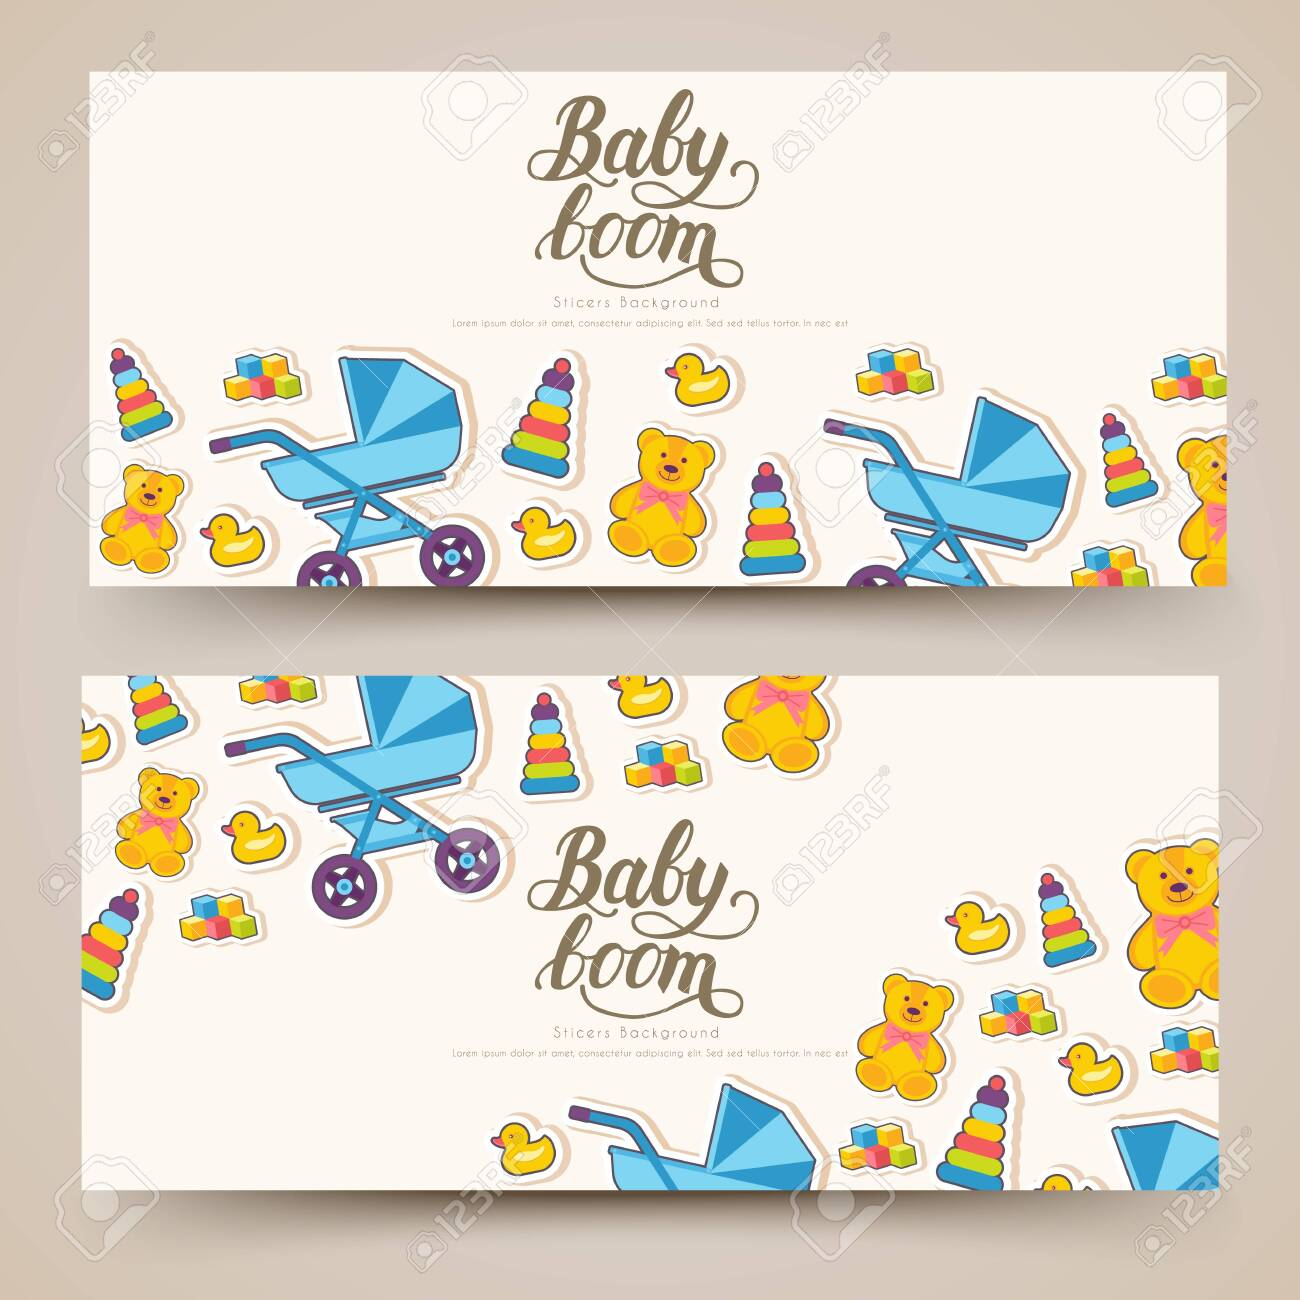 World Breastfeeding Week Cards Banners Kids Elements Of Flyear Royalty Free Cliparts Vectors And Stock Illustration Image 123642496